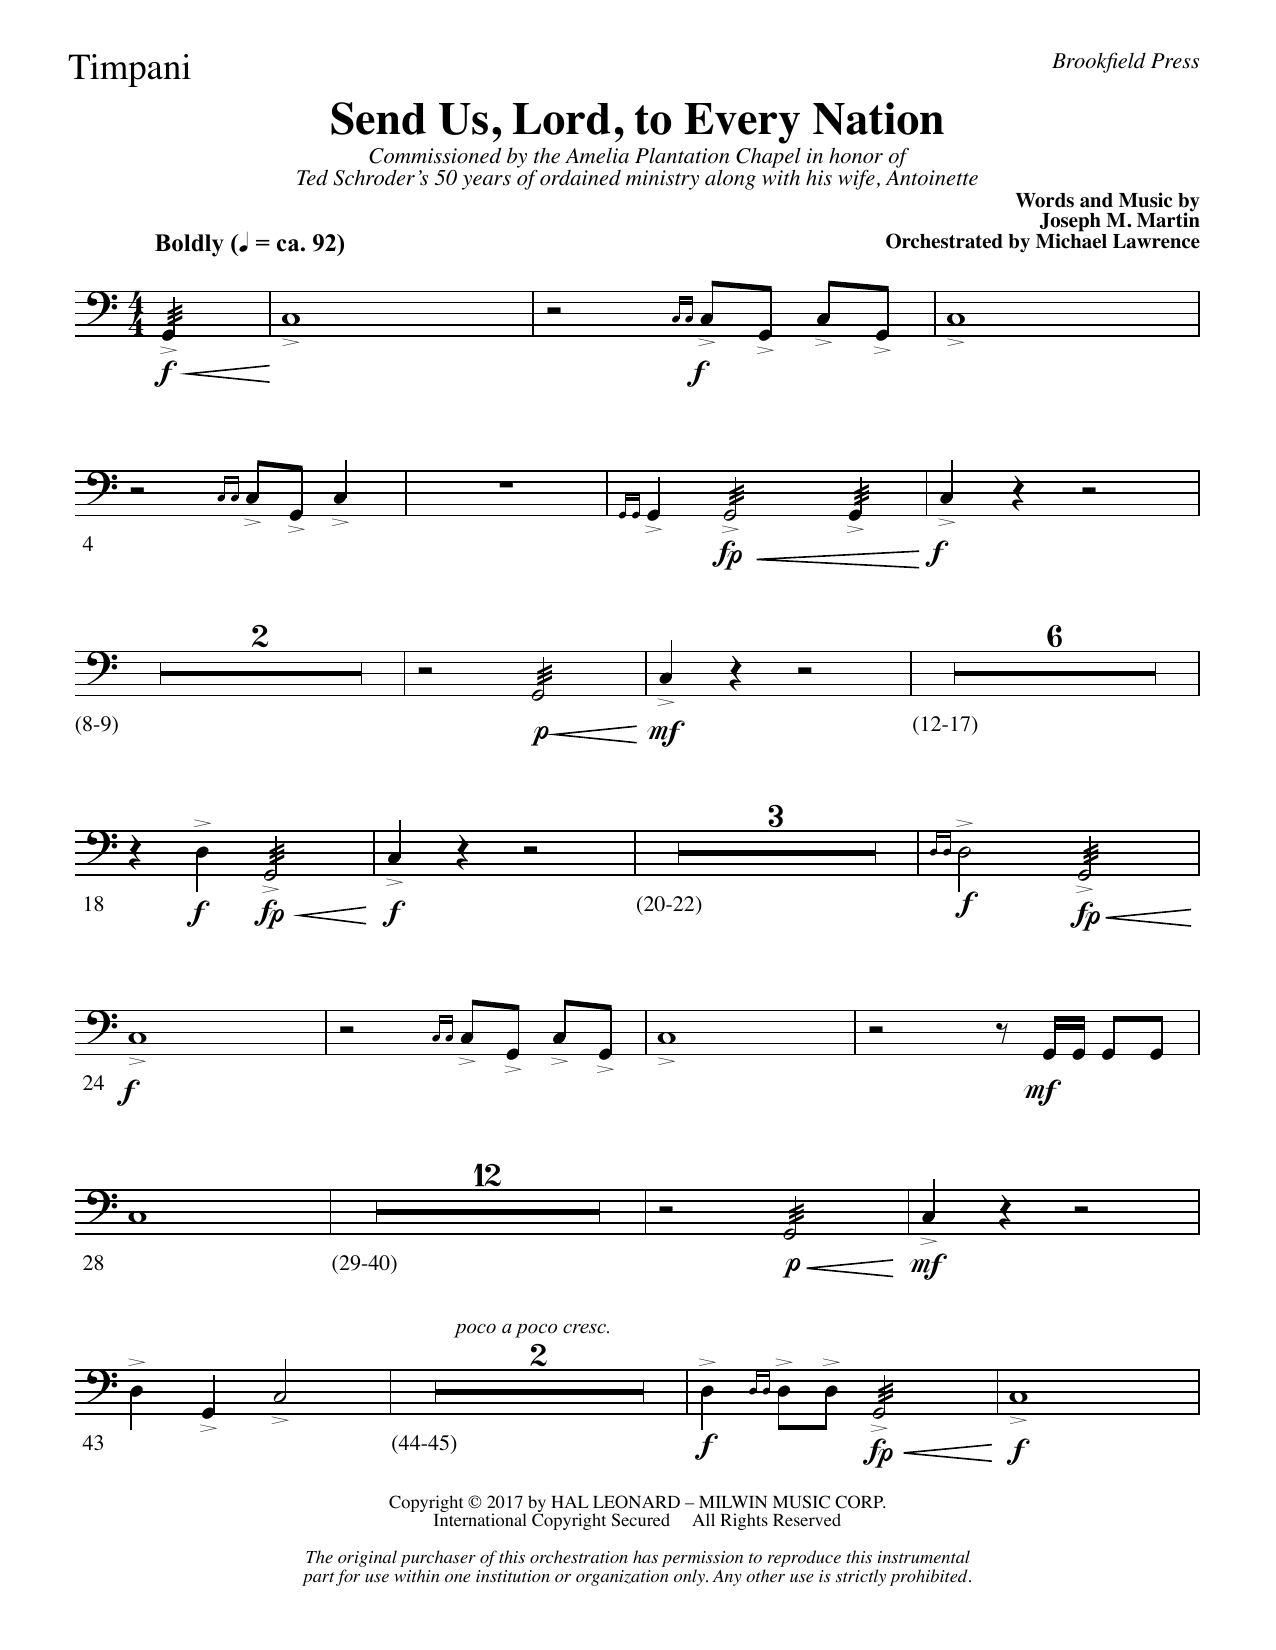 Joseph M. Martin Send Us, Lord, to Every Nation - Timpani sheet music notes and chords. Download Printable PDF.